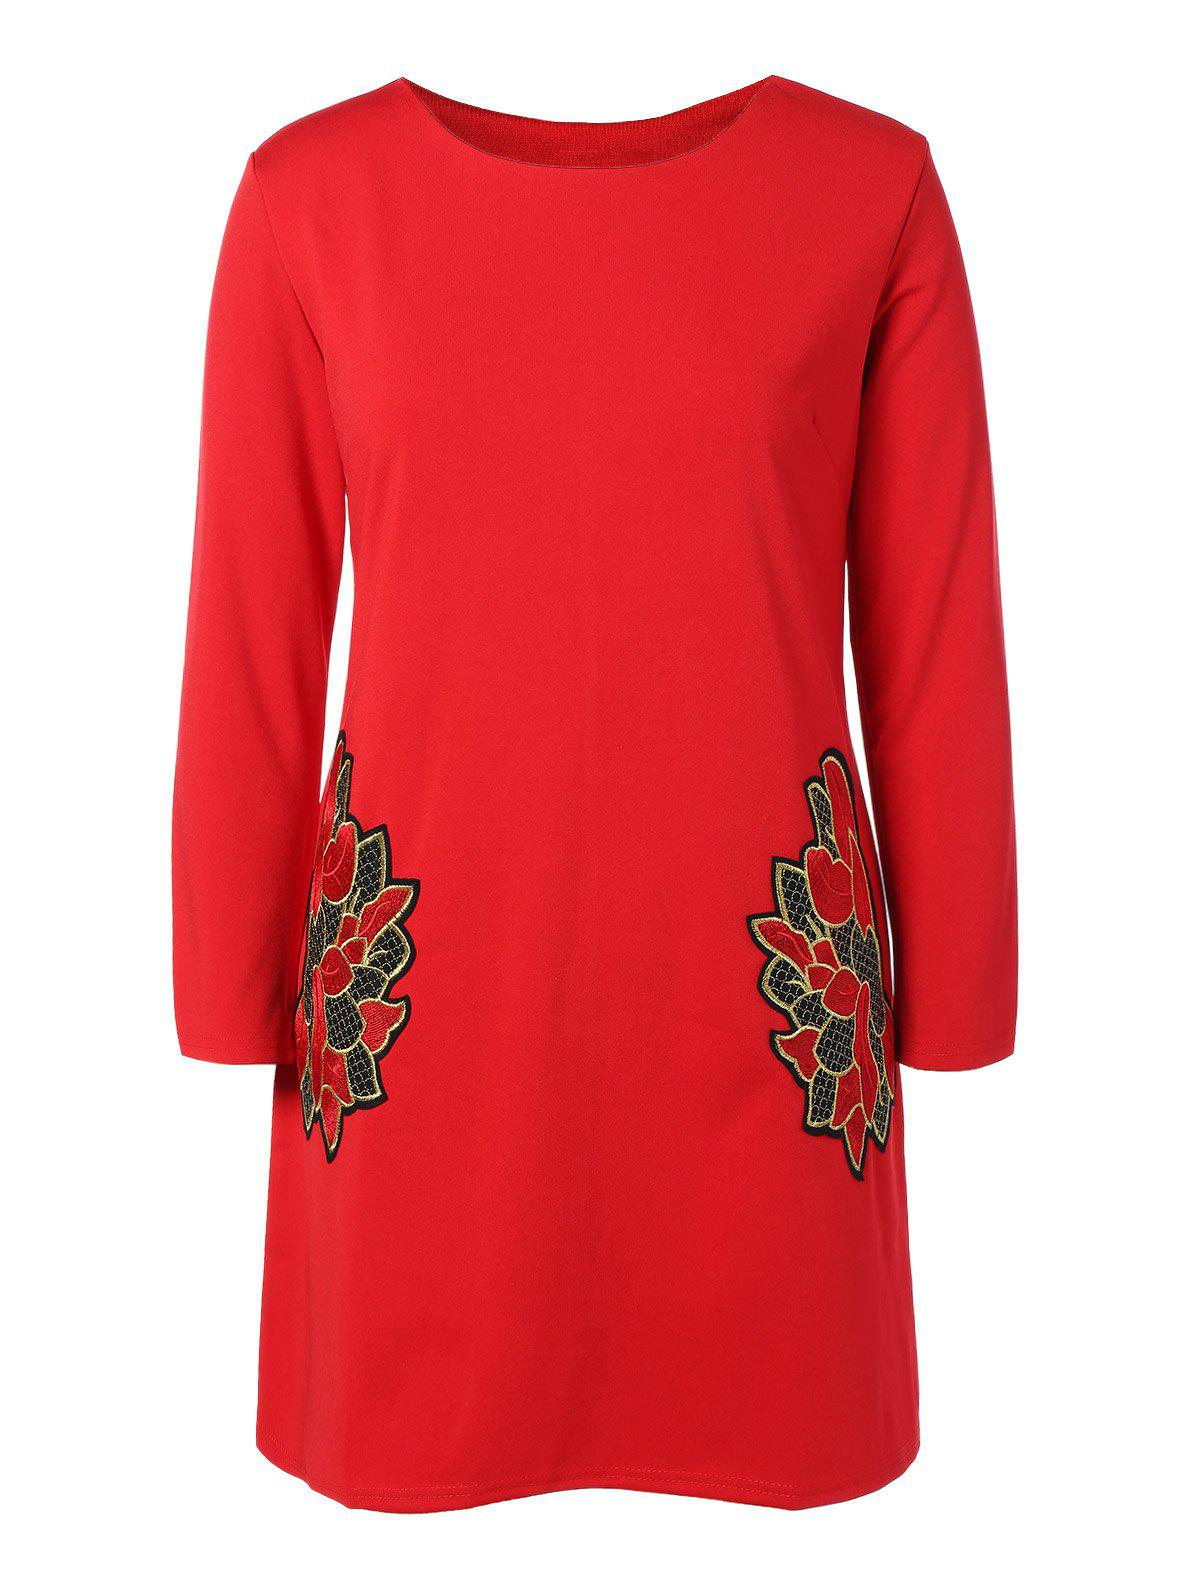 Plus Size Embroidered Long Sleeve DressWomen<br><br><br>Size: 2XL<br>Color: RED